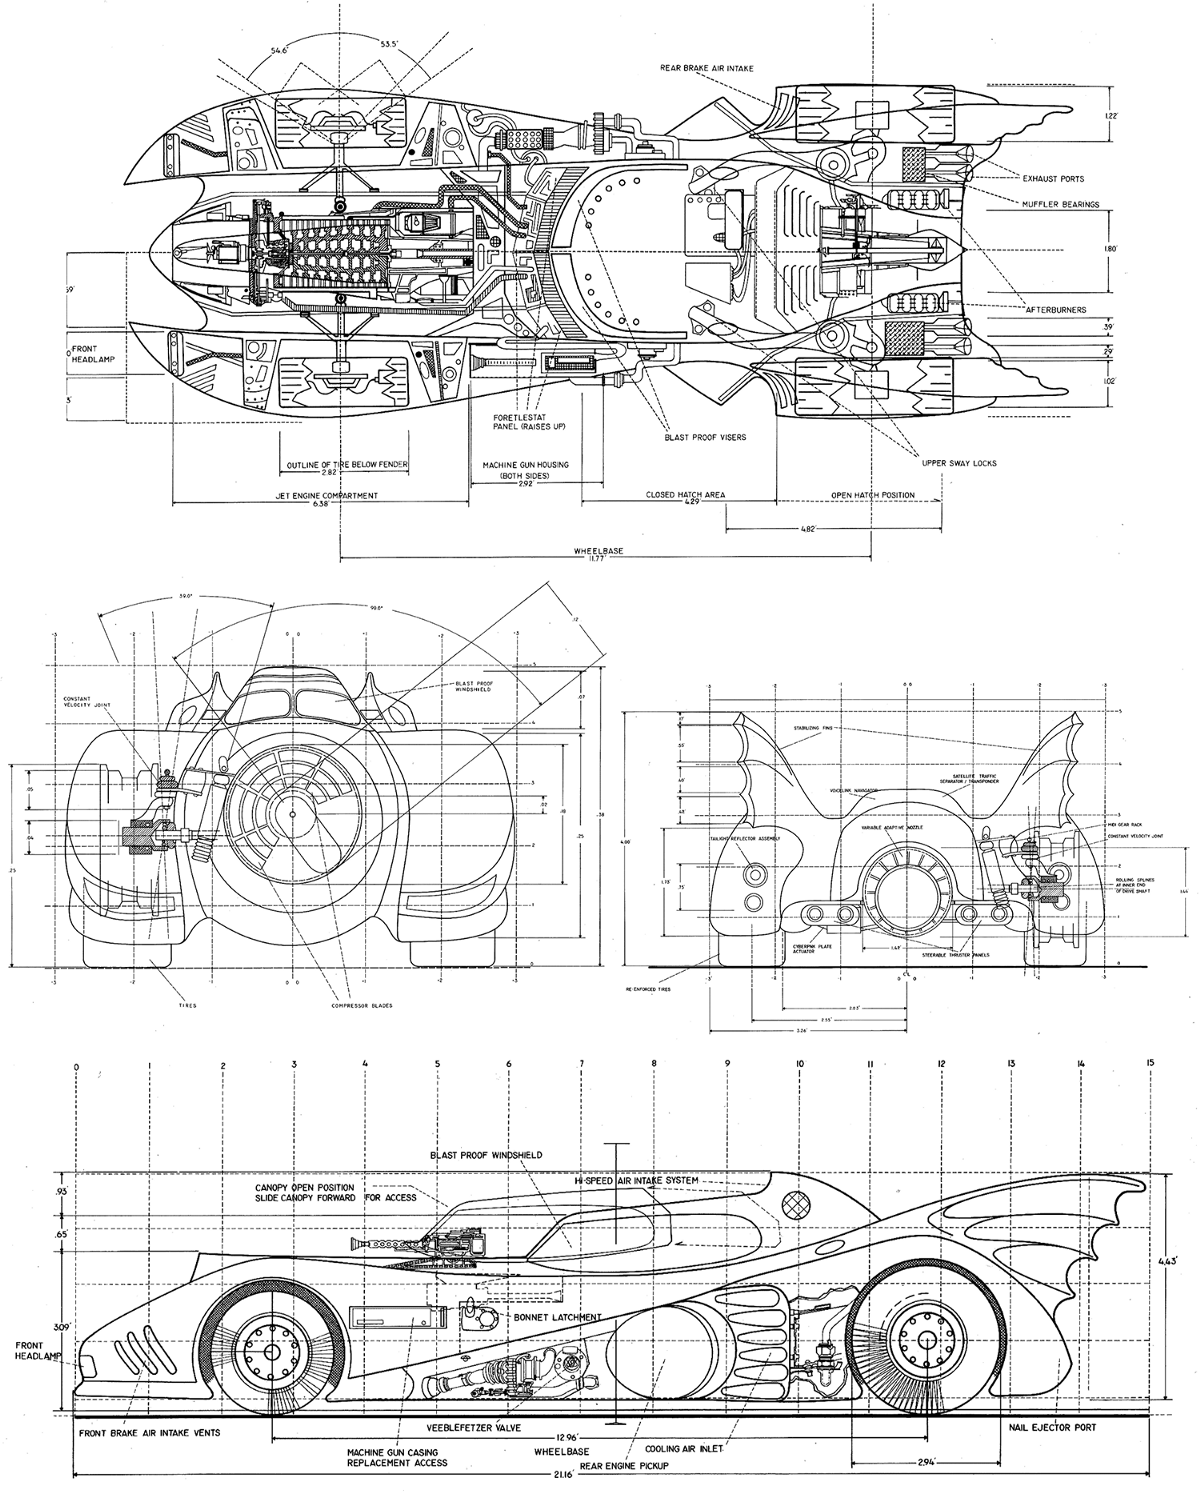 Game Developers Guide To Graphical Projections With Video Mad Max Engine Diagram Batmobile From Batman Warner Bros 1989 Left X Wing Fighter The Essential Vehicles And Vessels Troy Vigil Illustrator 1996 Right